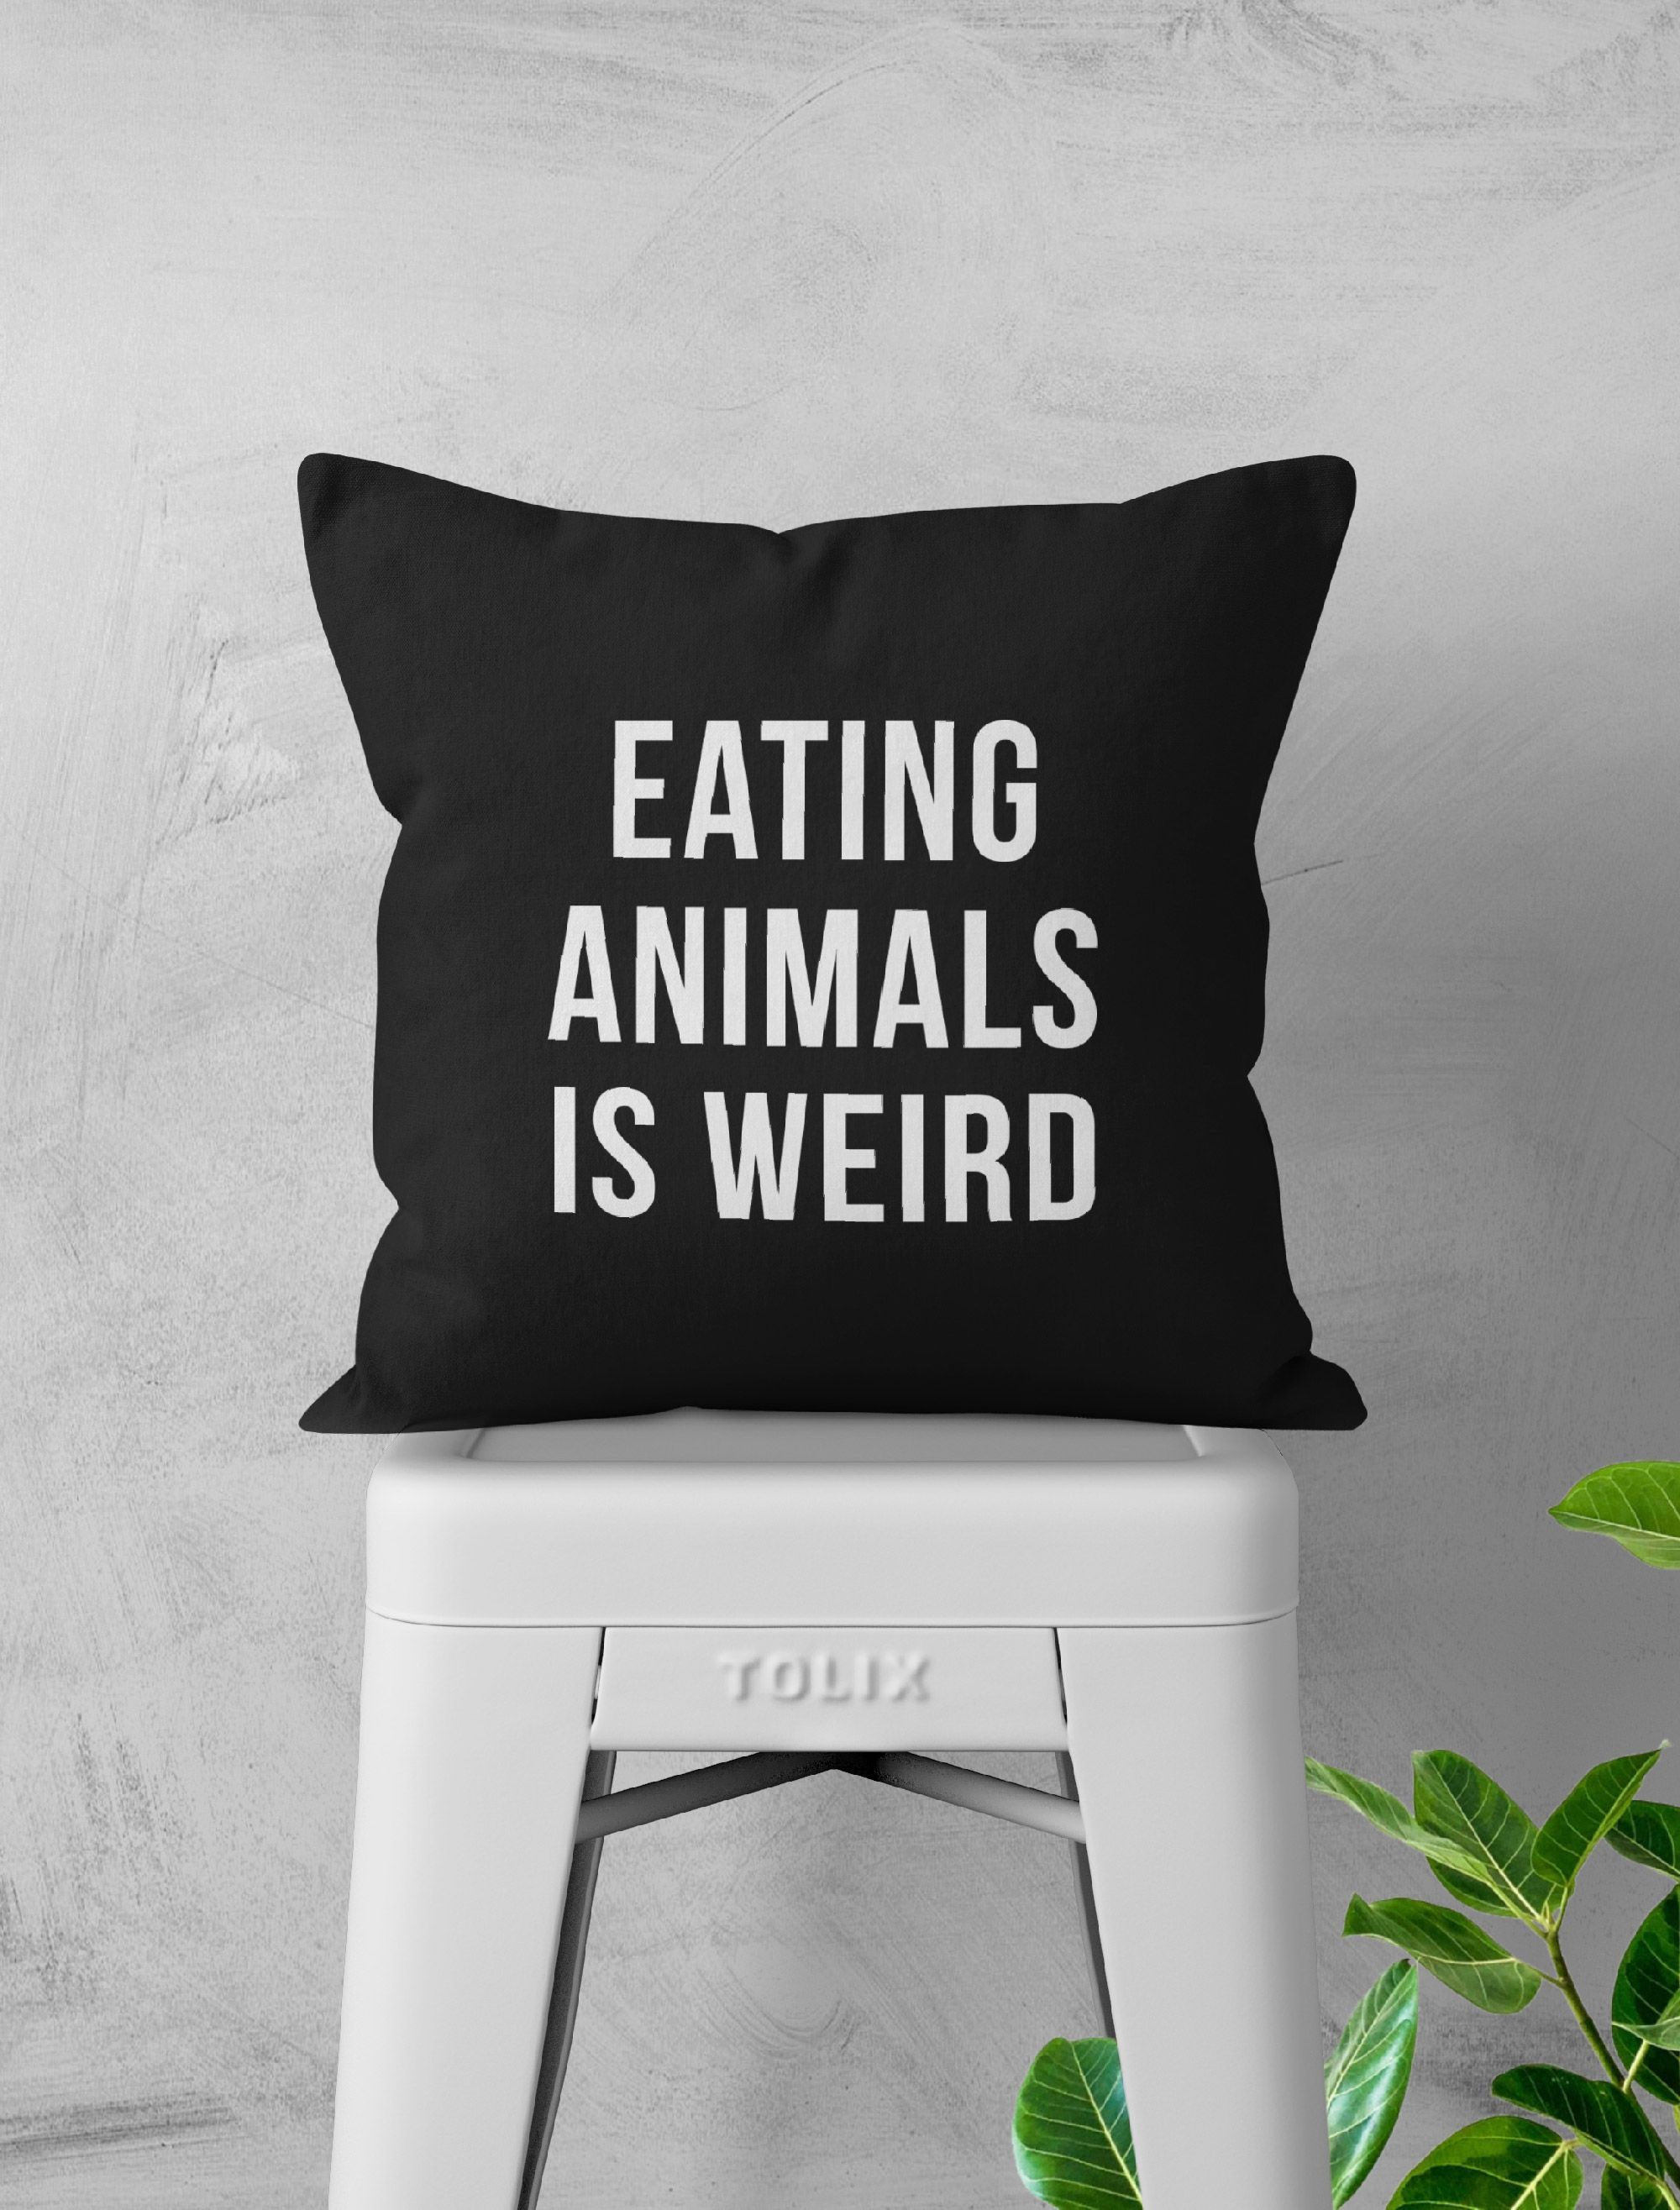 Eating Animals Is Weird Pillow Cover #vegetarianquotes Vegan/Vegetarian Quote Throw Pillow Case  #veganquote #veganpillow #vegetarianpillow #vegandecor #vegetarianquotes